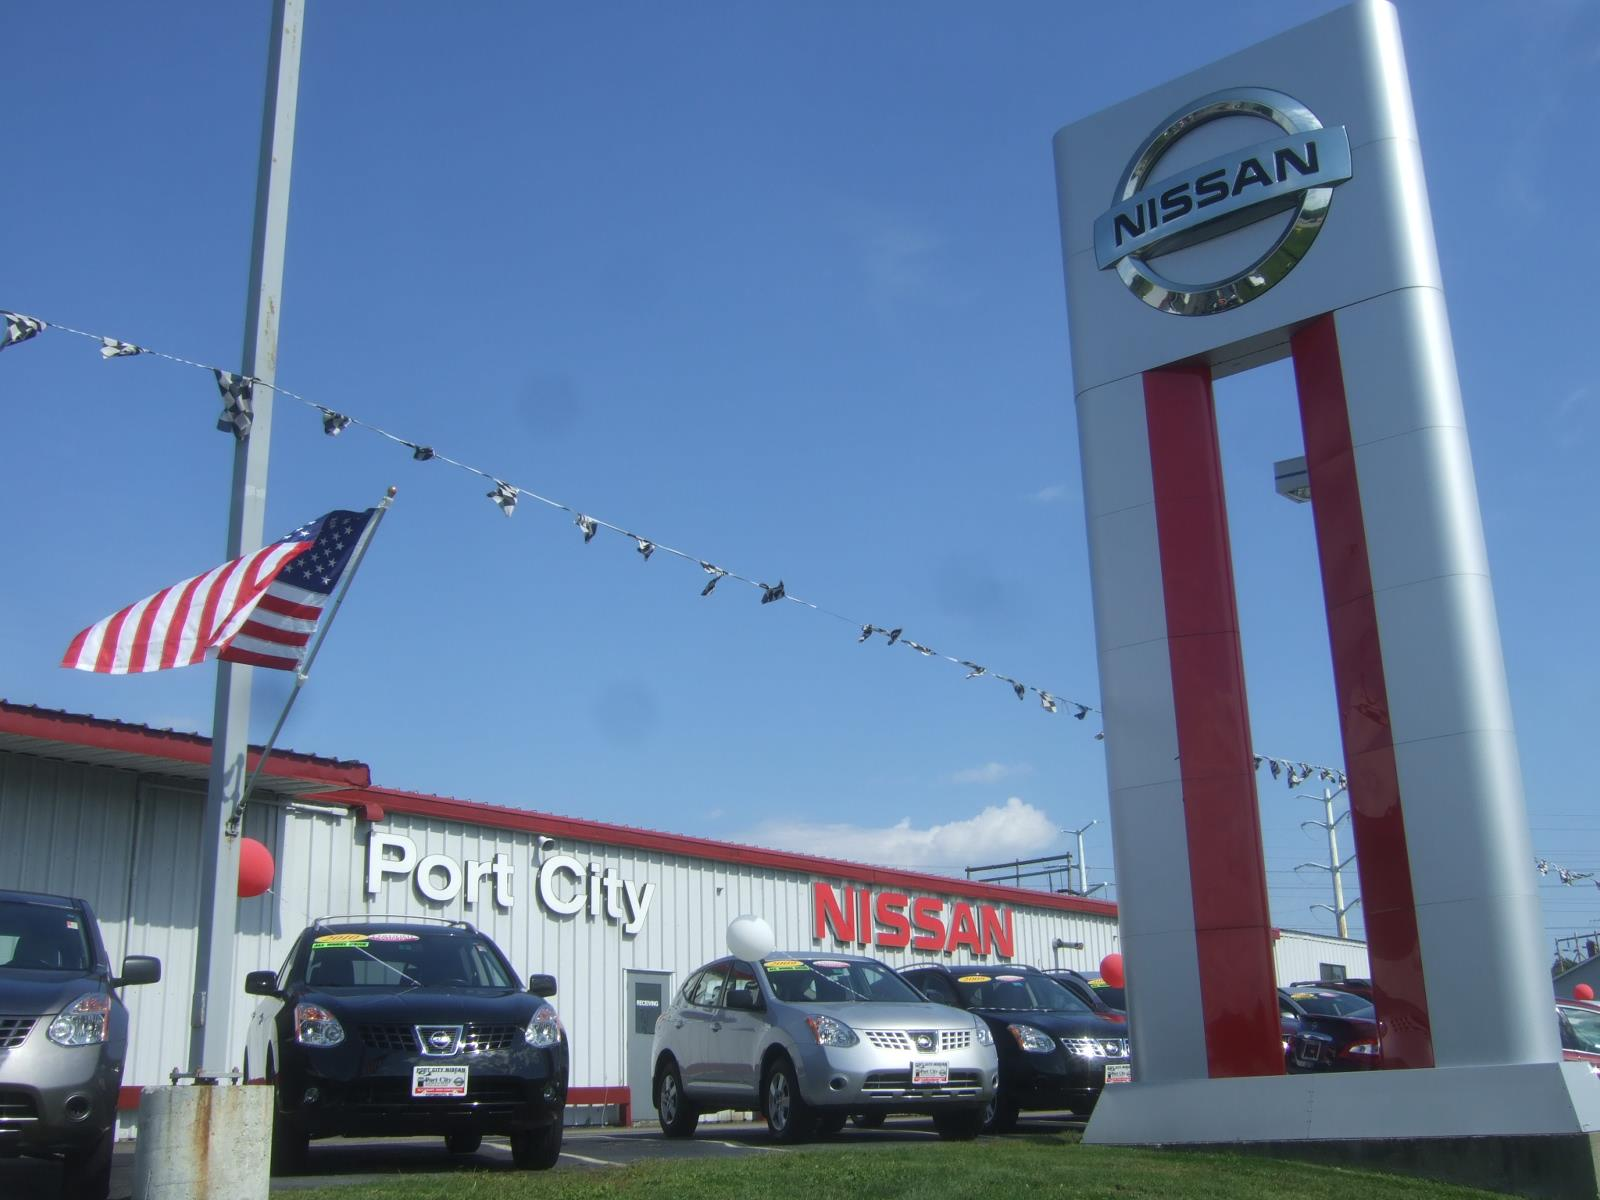 Port City Nissan Portsmouth NH YPcom - Map 400 us hwy 1 byp portsmouth nh 03801